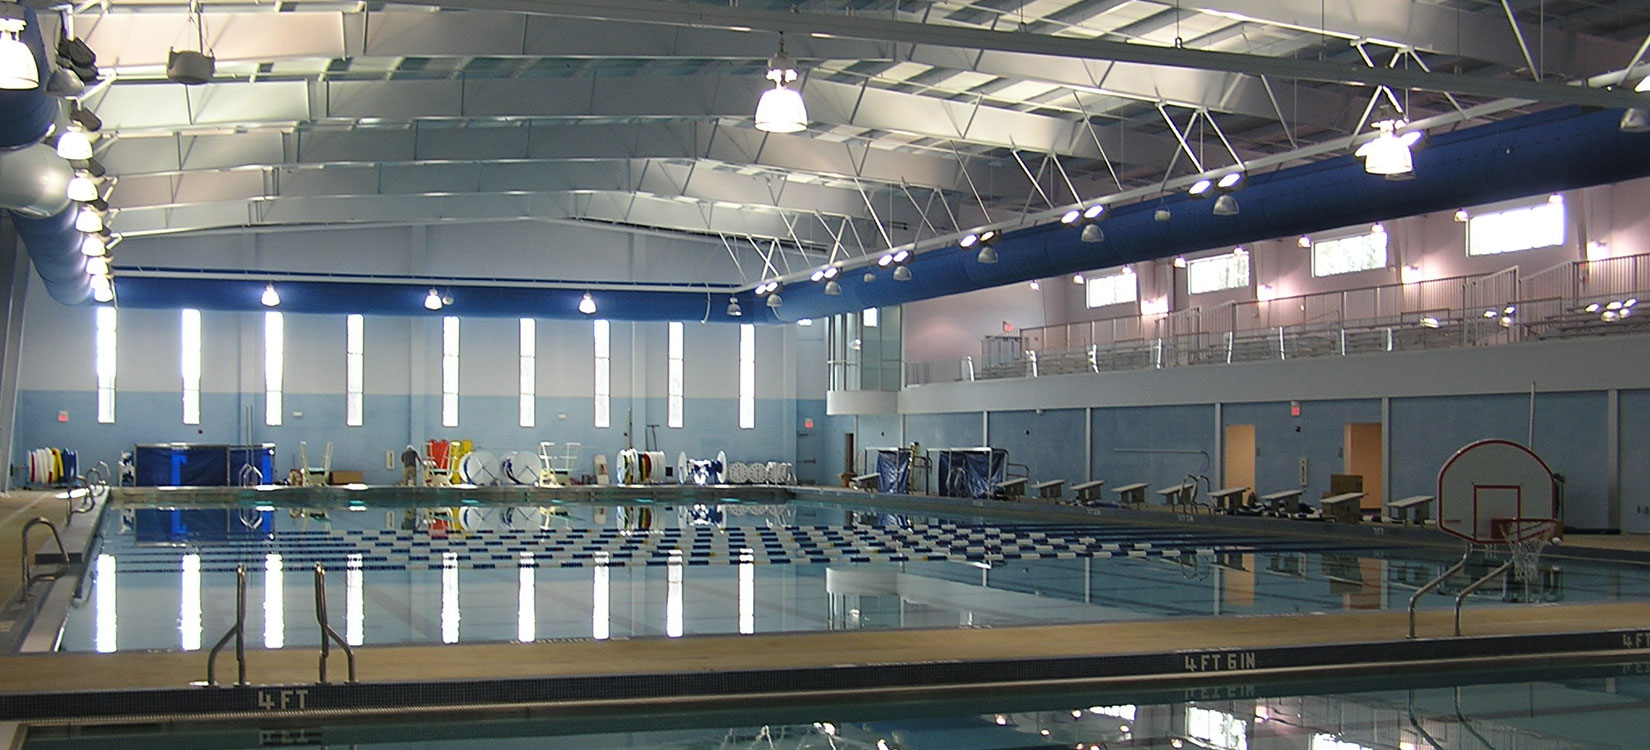 Image of Aquatic Center just outside of Atlanta GA, a pre-engineered metal building by Nucor Building Systems with a metal roofing system that was subcontracted to Fox Building Company for furnish and erect.